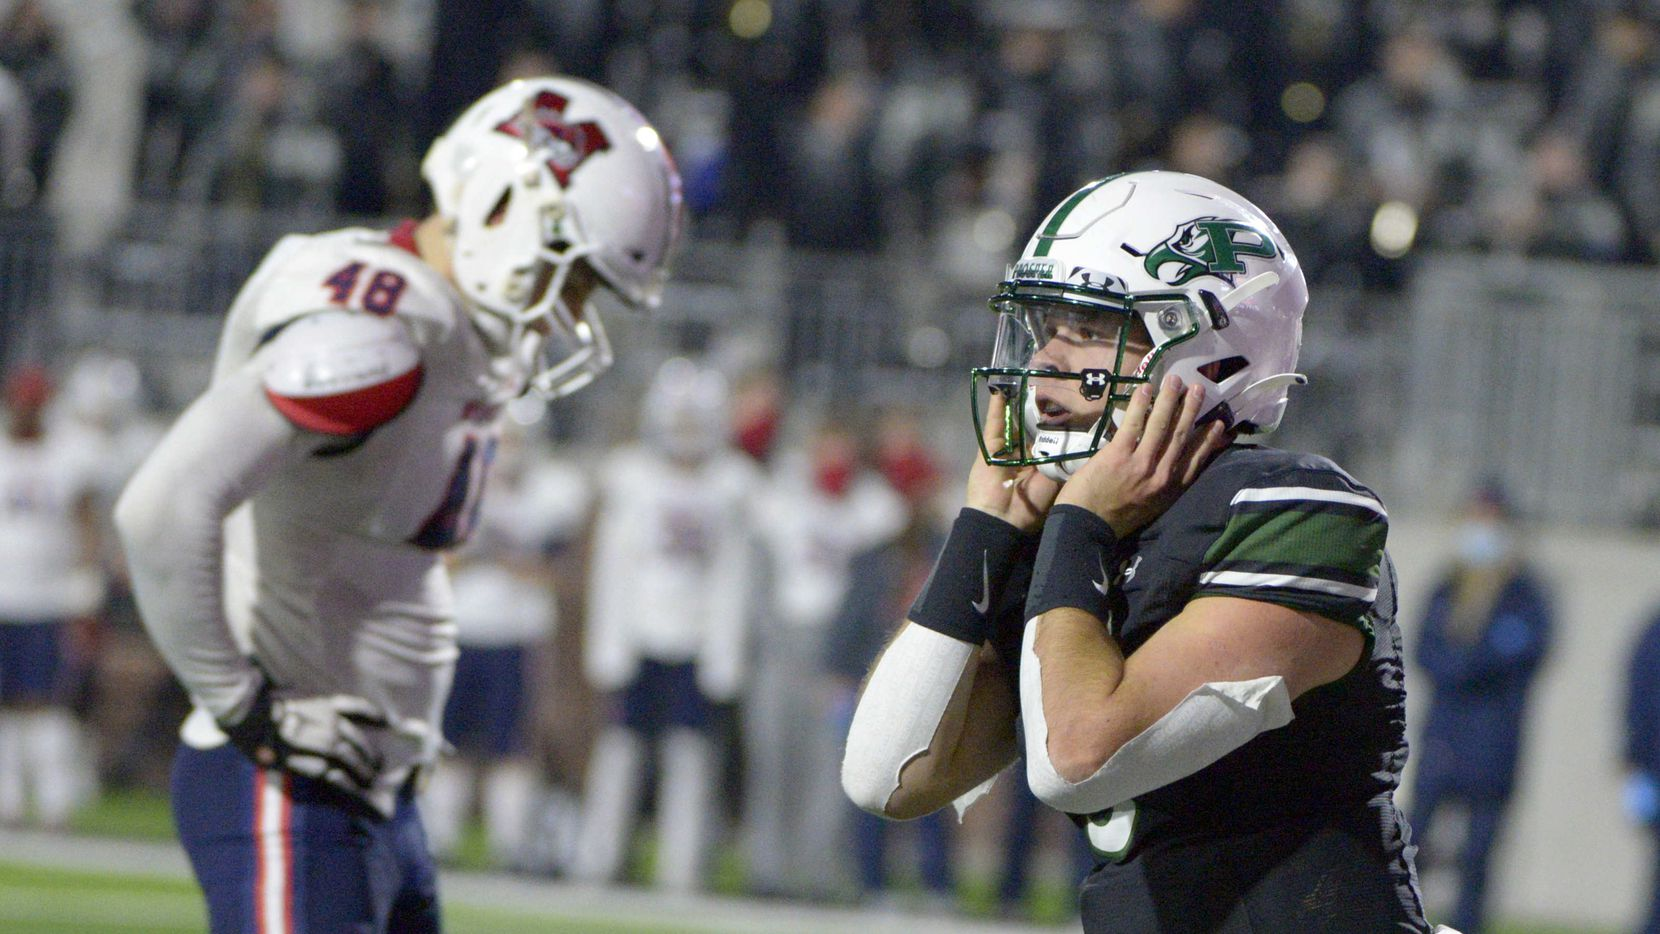 Prosper's Jackson Berry (5) celebrates after his game-winning touchdown in the final minutes of their 29-28 win of a high school football game between McKinney Boyd and Prosper, Friday, Dec. 4, 2020, in Prosper, Texas.